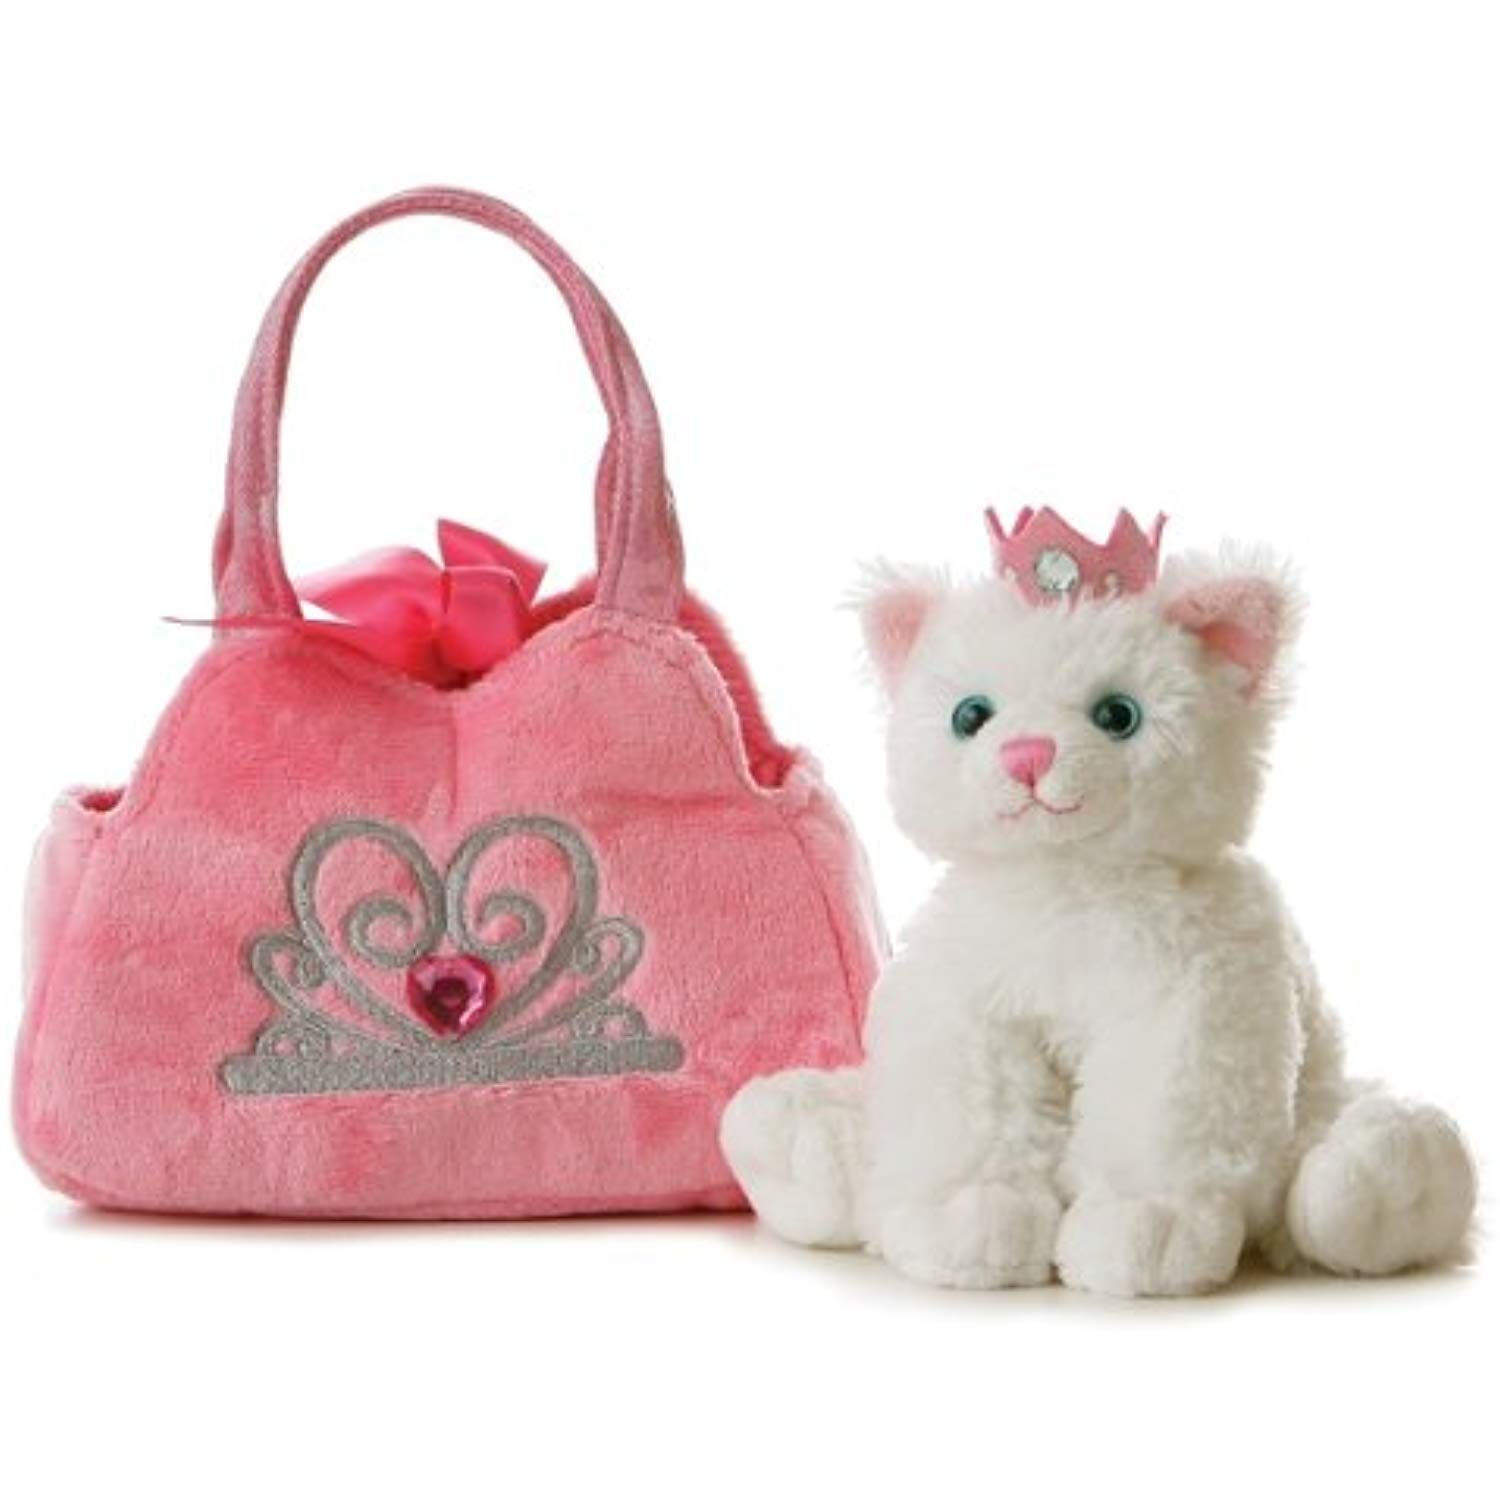 Aurora World Fancy Pals Plush Princess Kitten Purse Pet Carrier You Can Find More Details By Visiti Girl Stuffed Animals Pet Carrier Purse Animal Plush Toys